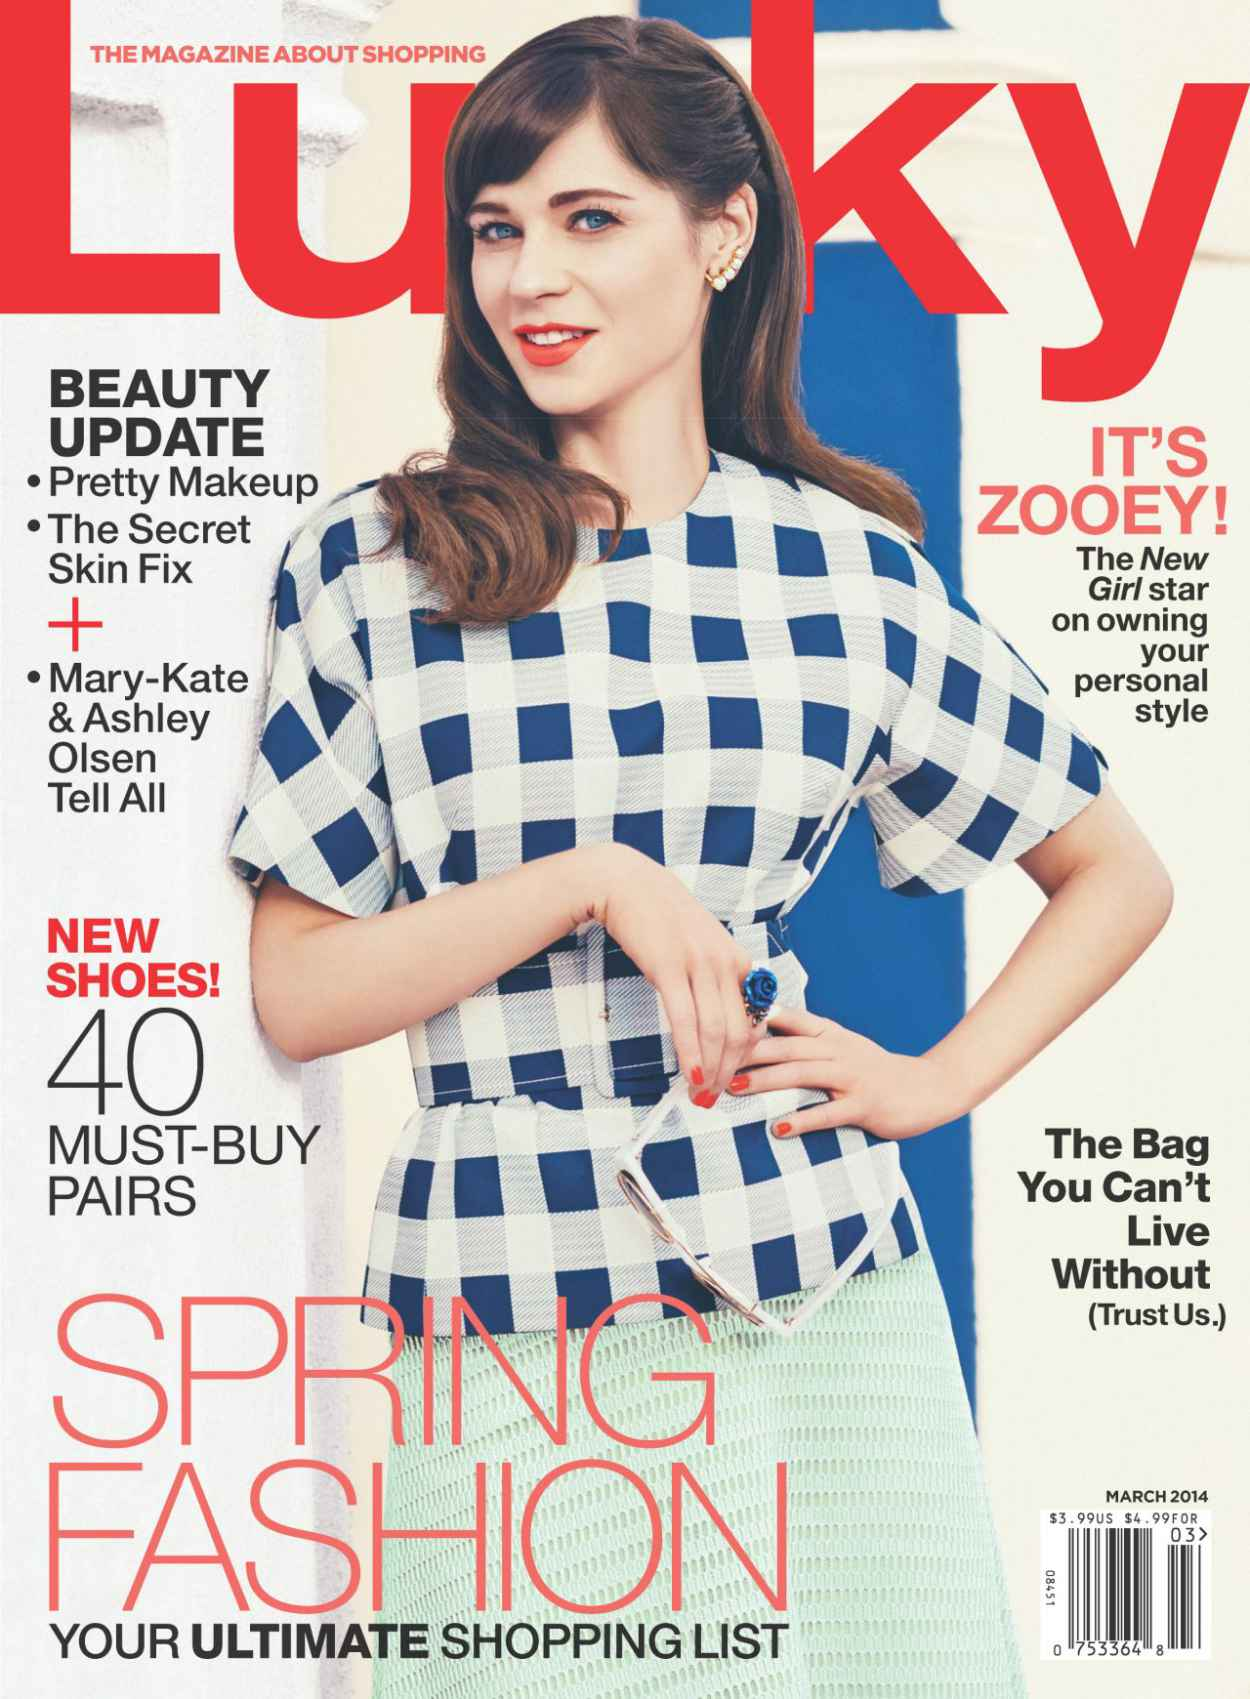 Zooey Deschanel - LUCKY Magazine - March 2015 Cover-1